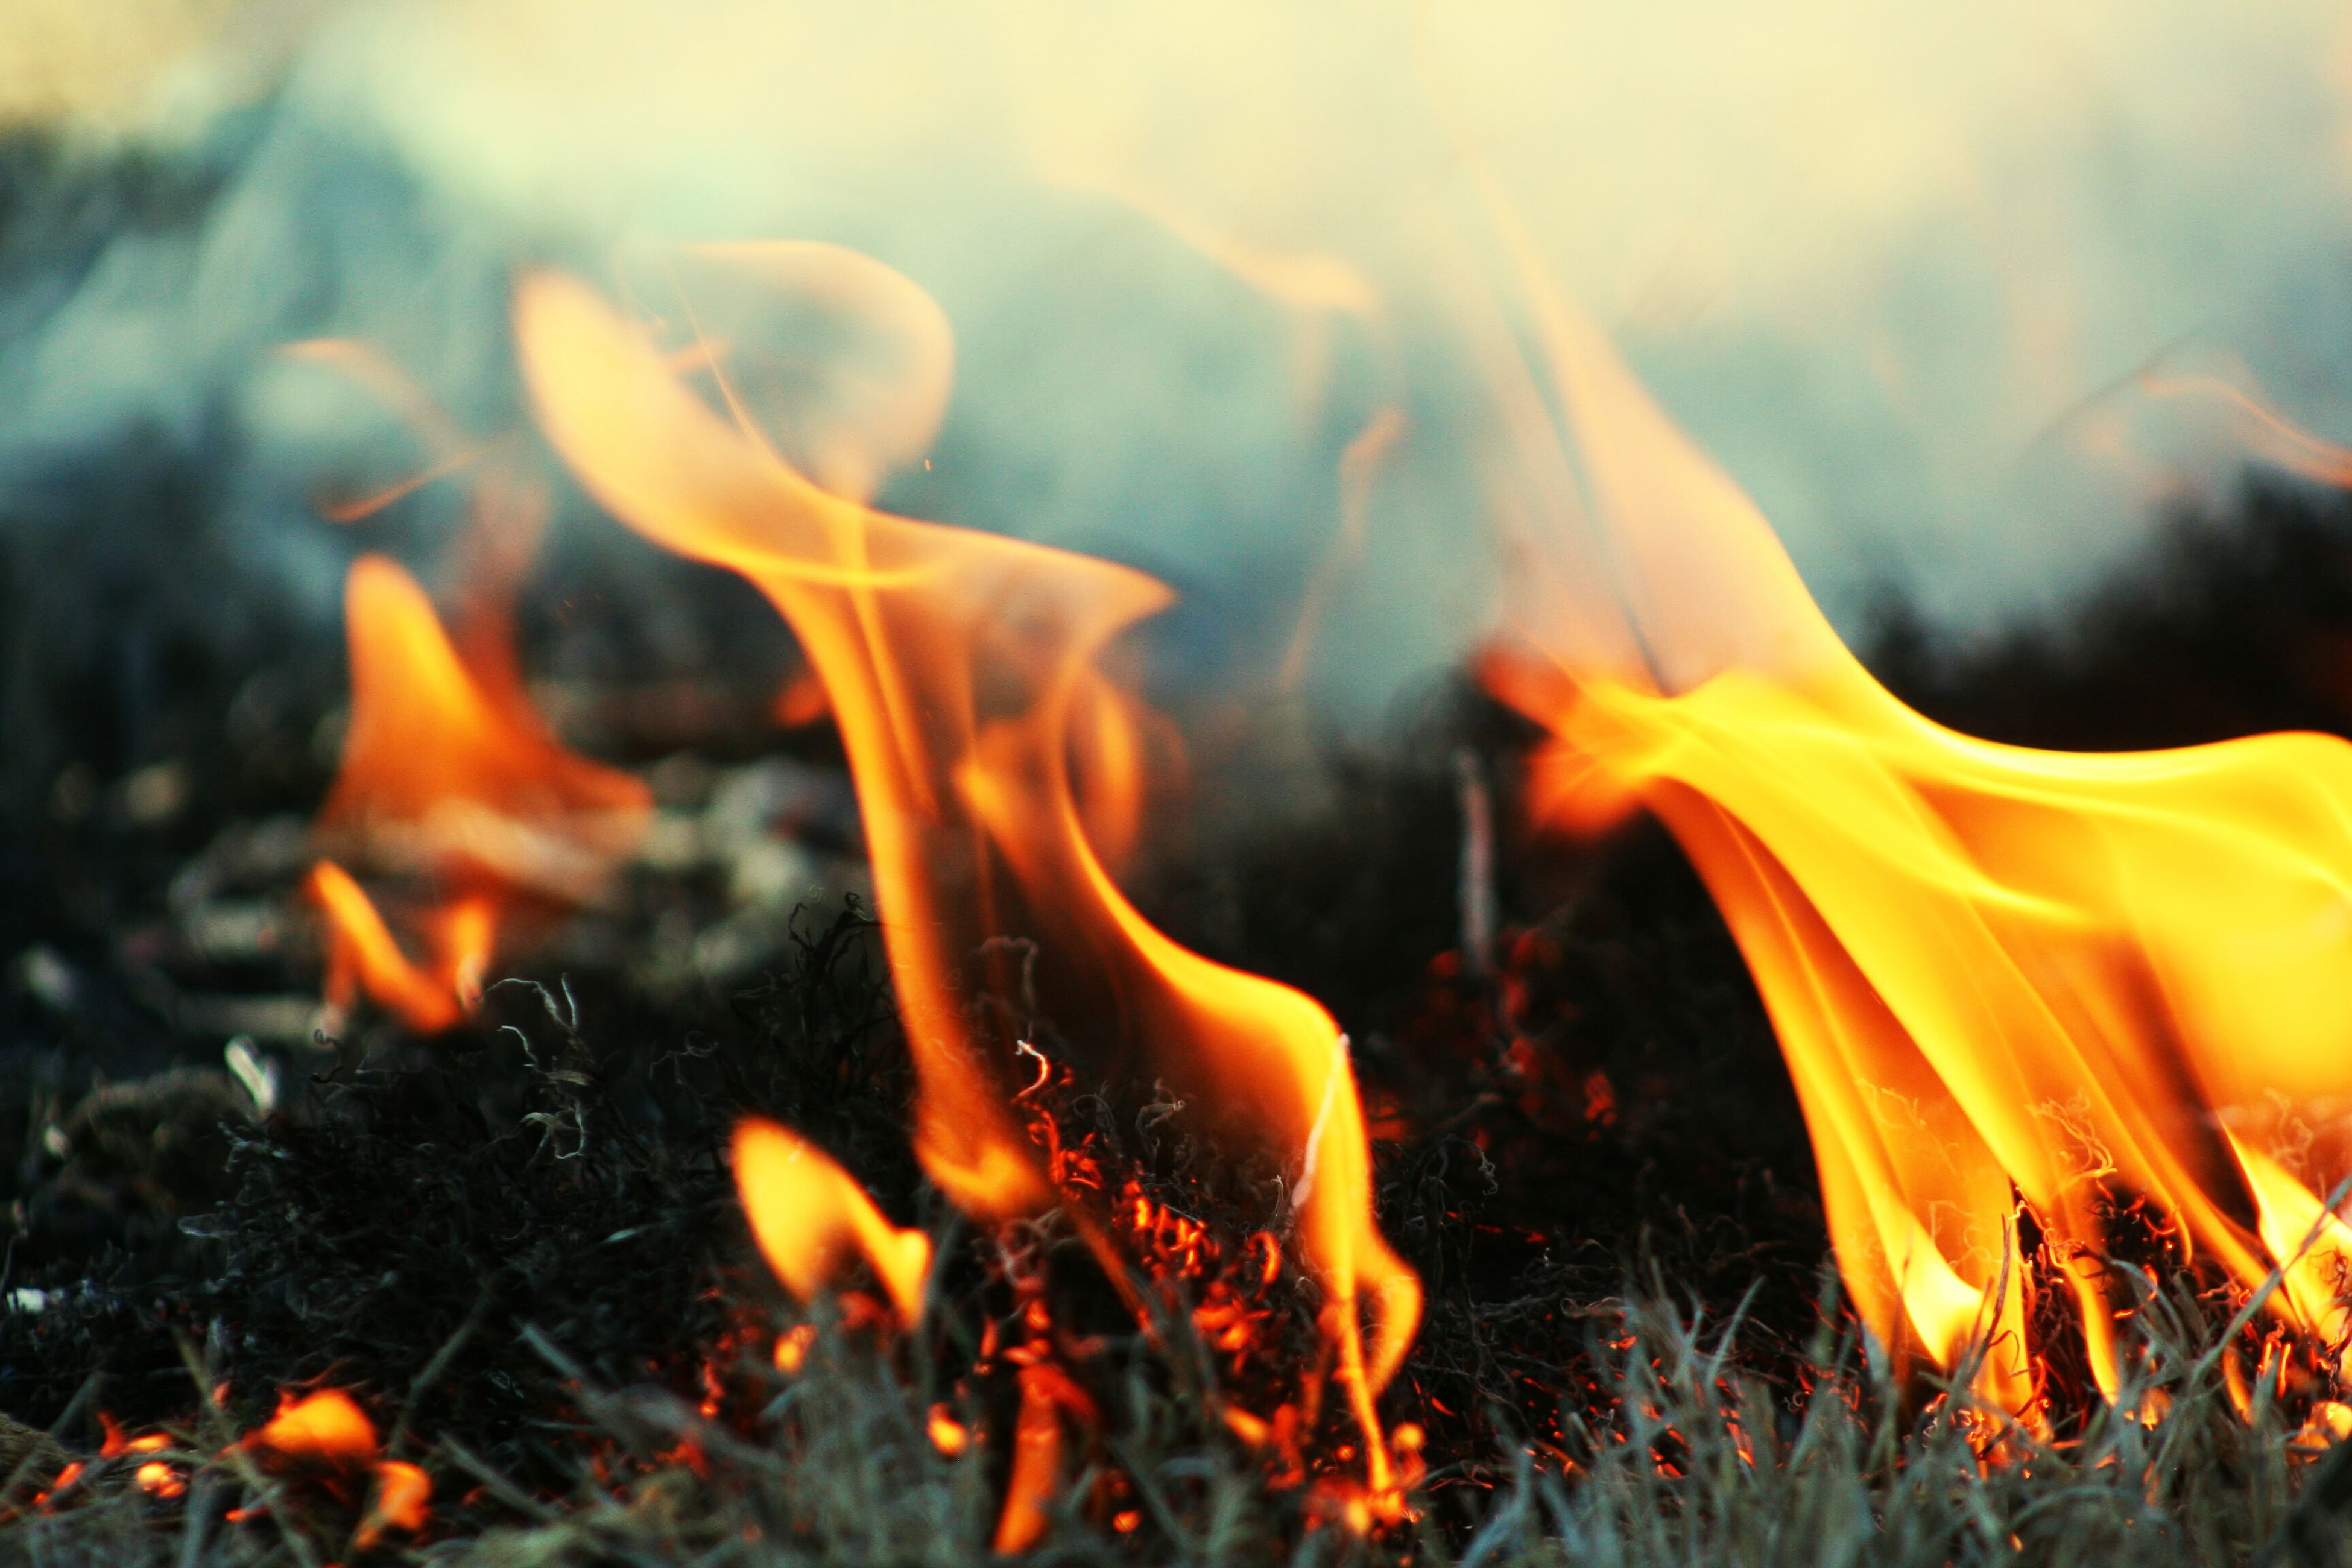 heat - temperature, burning, flame, smoke - physical structure, orange color, glowing, outdoors, fire, no people, close-up, bonfire, motion, nature, forest fire, ash, day